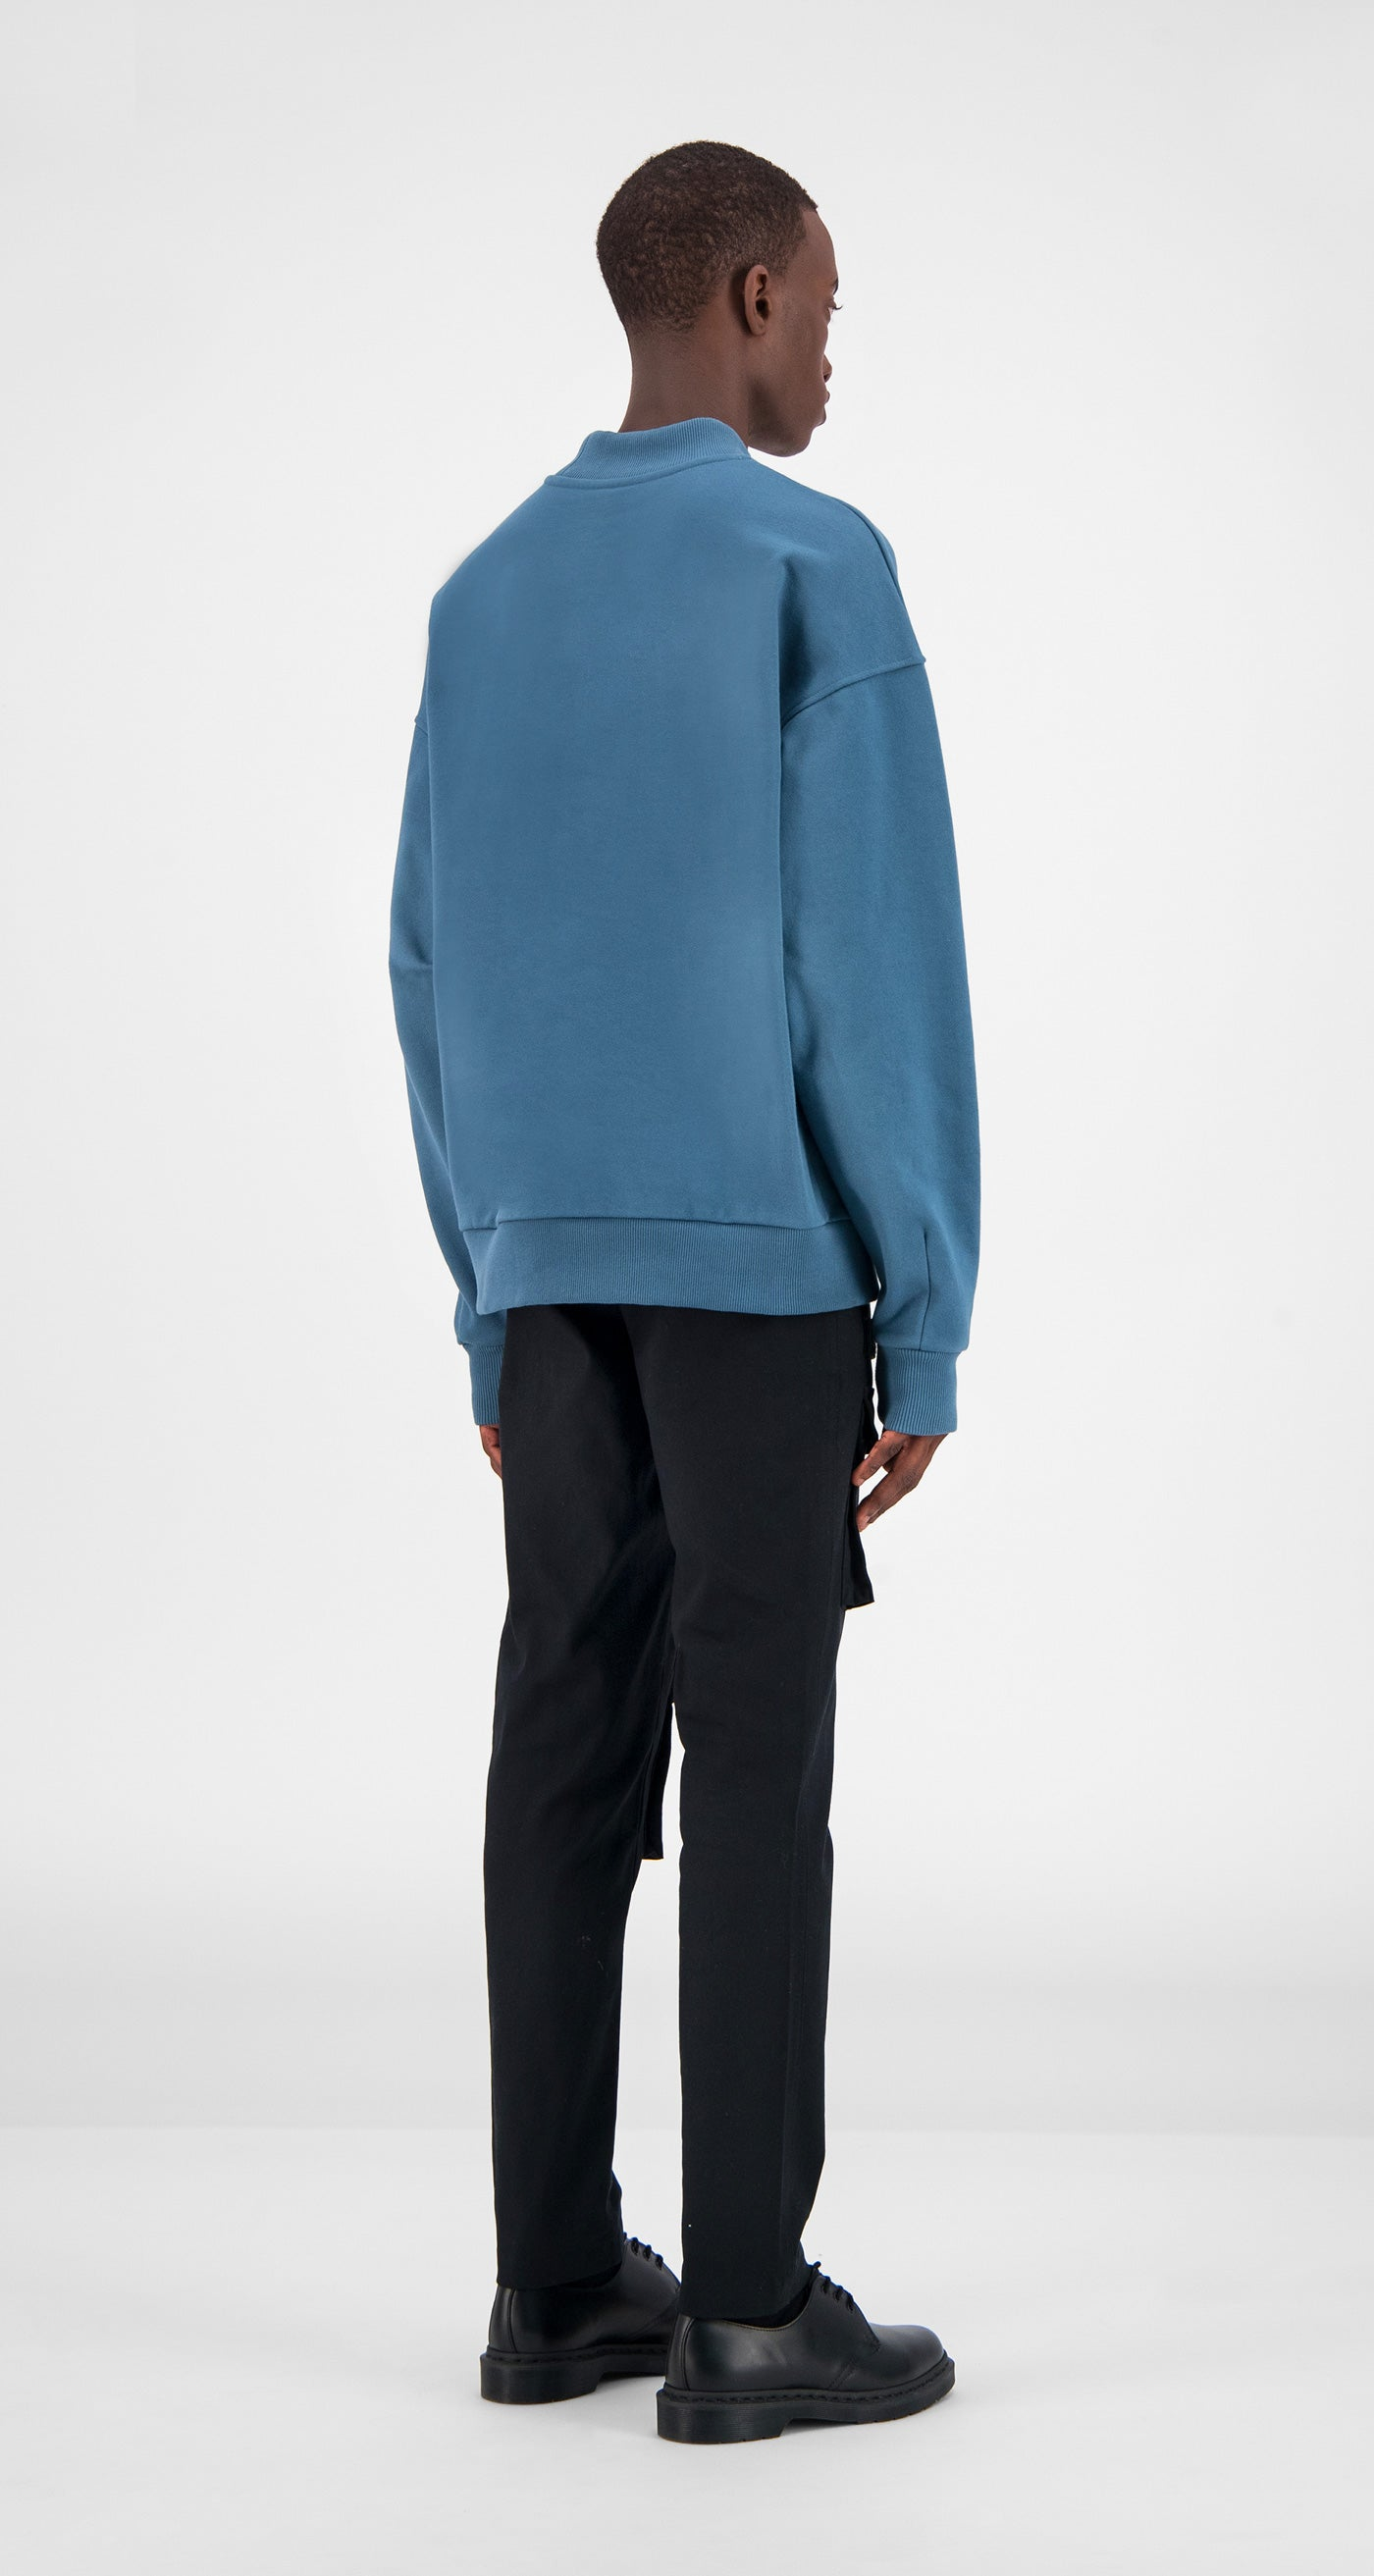 Teal Aba Sweater - Men Rear